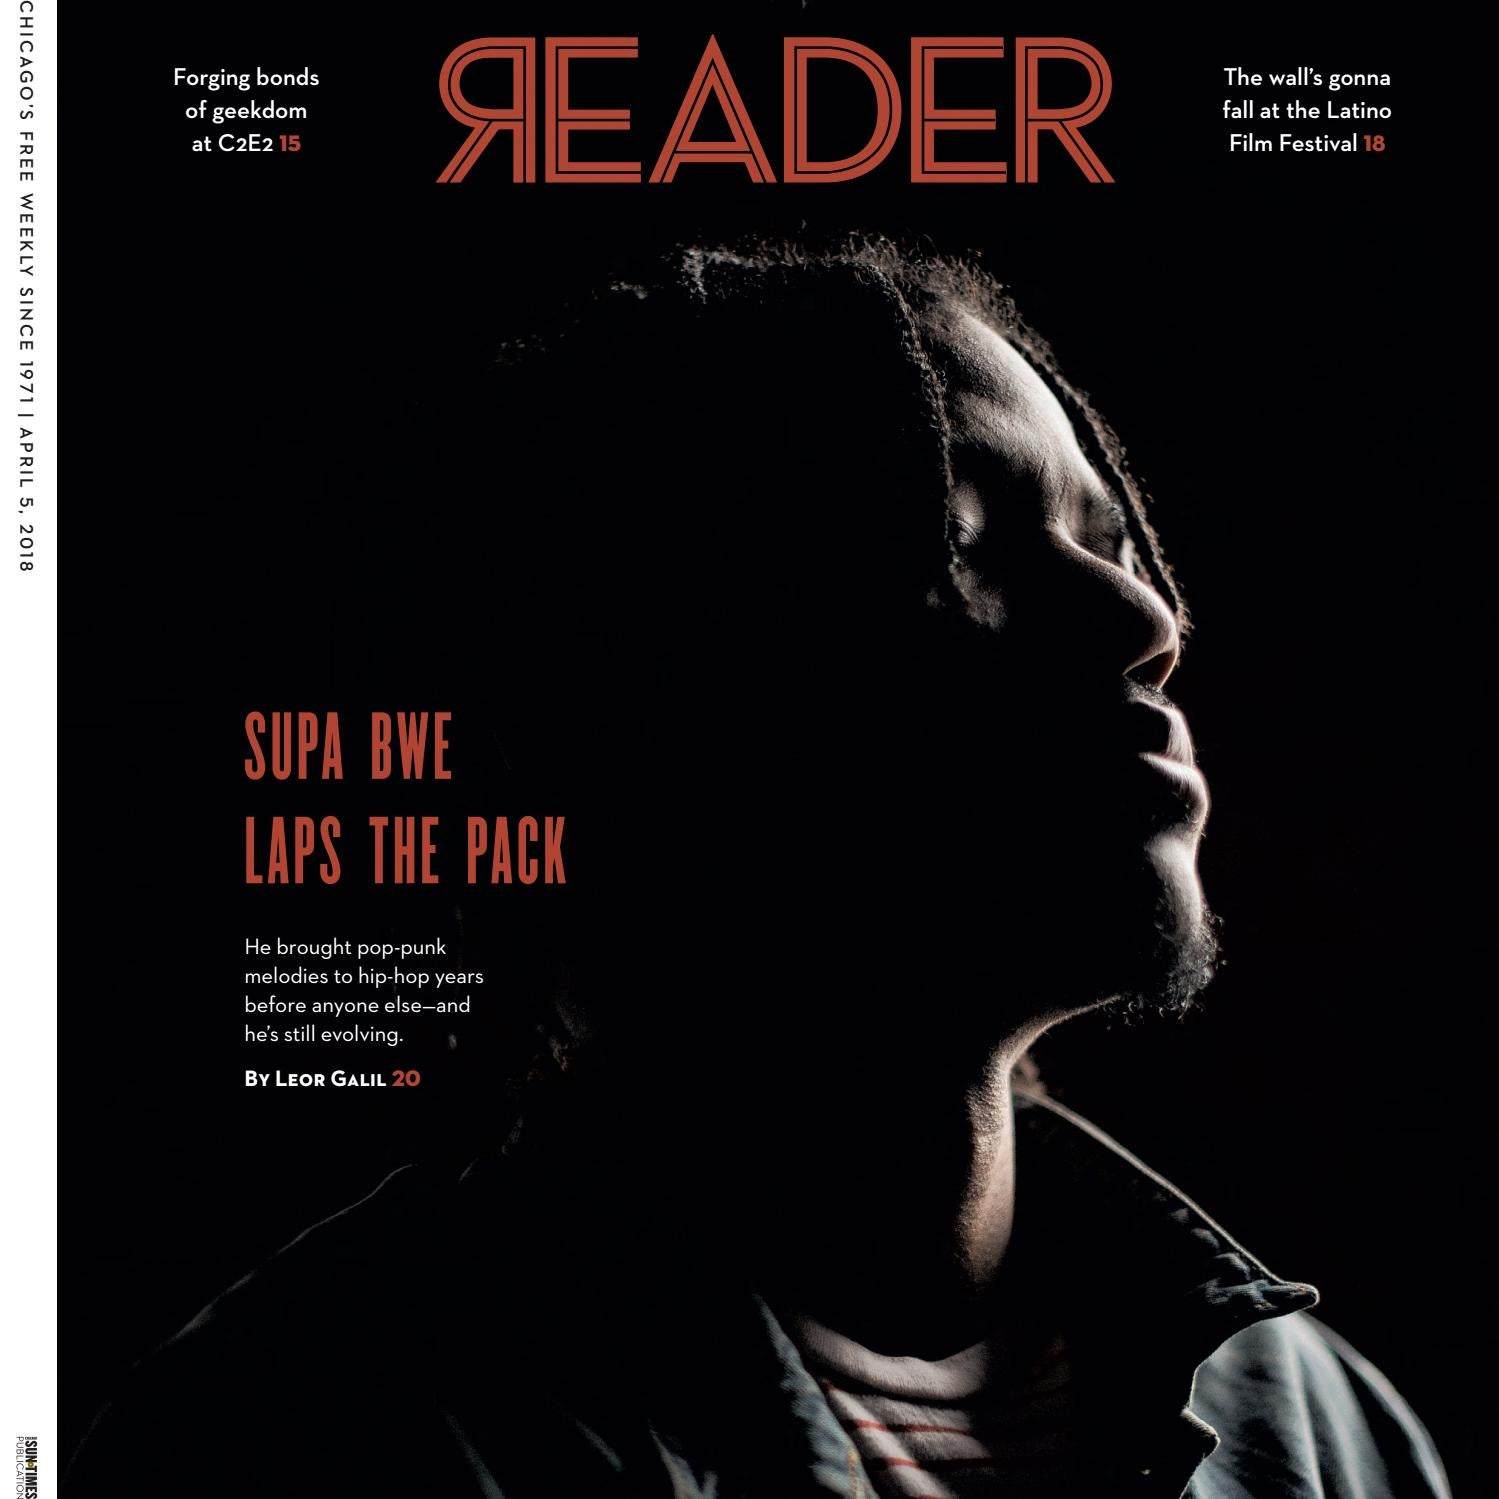 583eba9b6 Print Issue of April 5, 2018 (Volume 47, Number 26) by Chicago Reader -  issuu